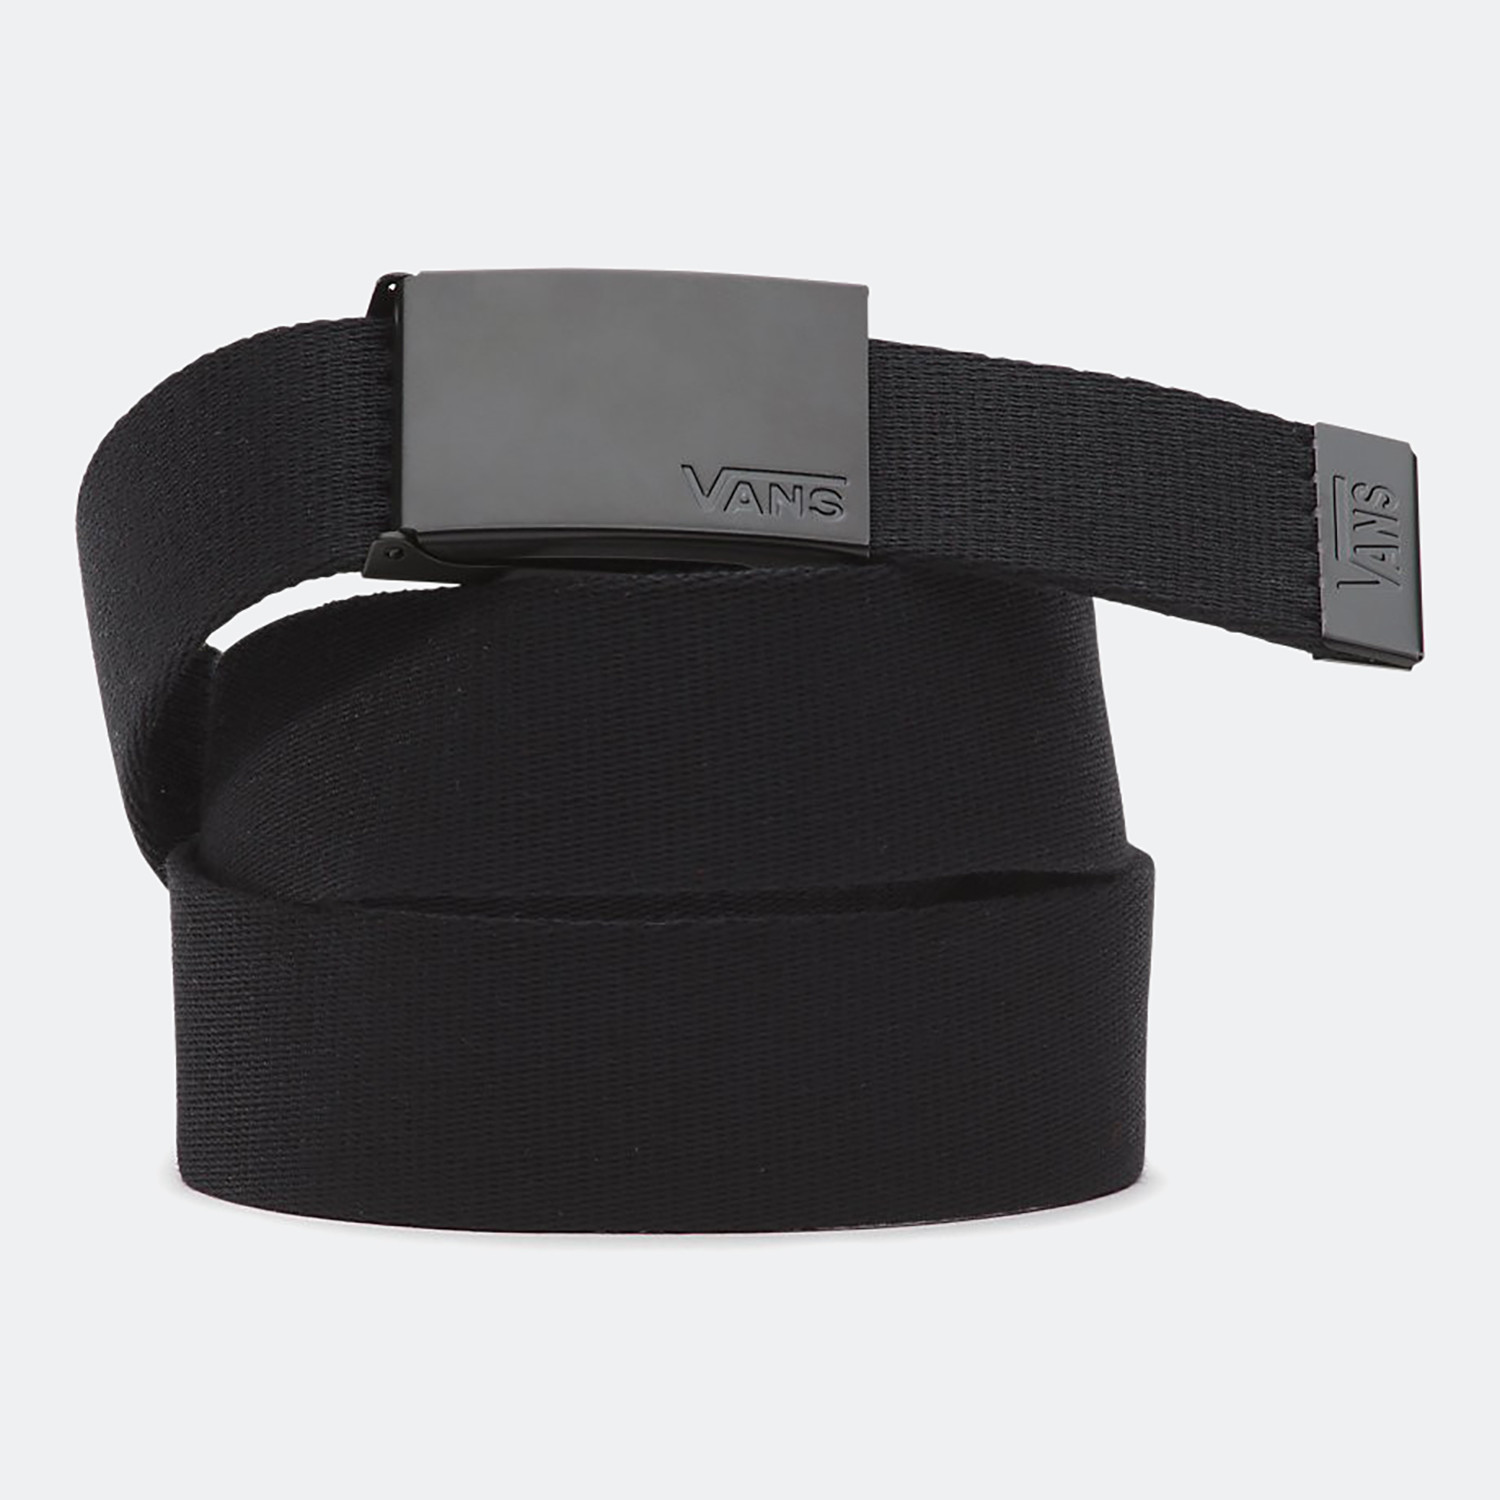 Vans Depster Web Men's Belt (9000048934_1469)